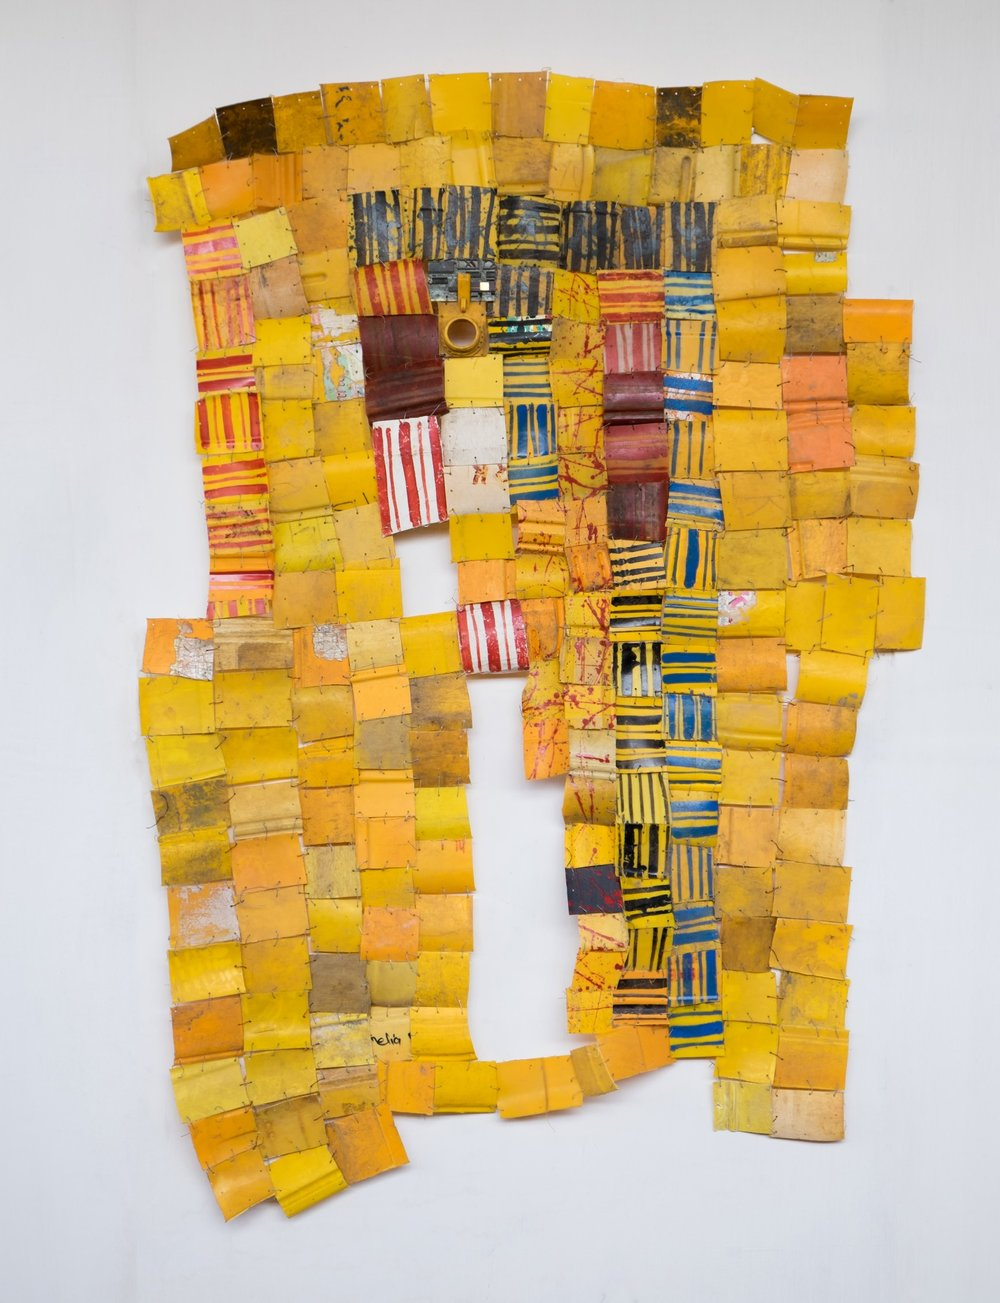 Serge Attukwei Clottey, Preventable Accident, 2016, plastics, wire and oil paint, 50'' x 72'', courtesy the artist and Gallery 1957